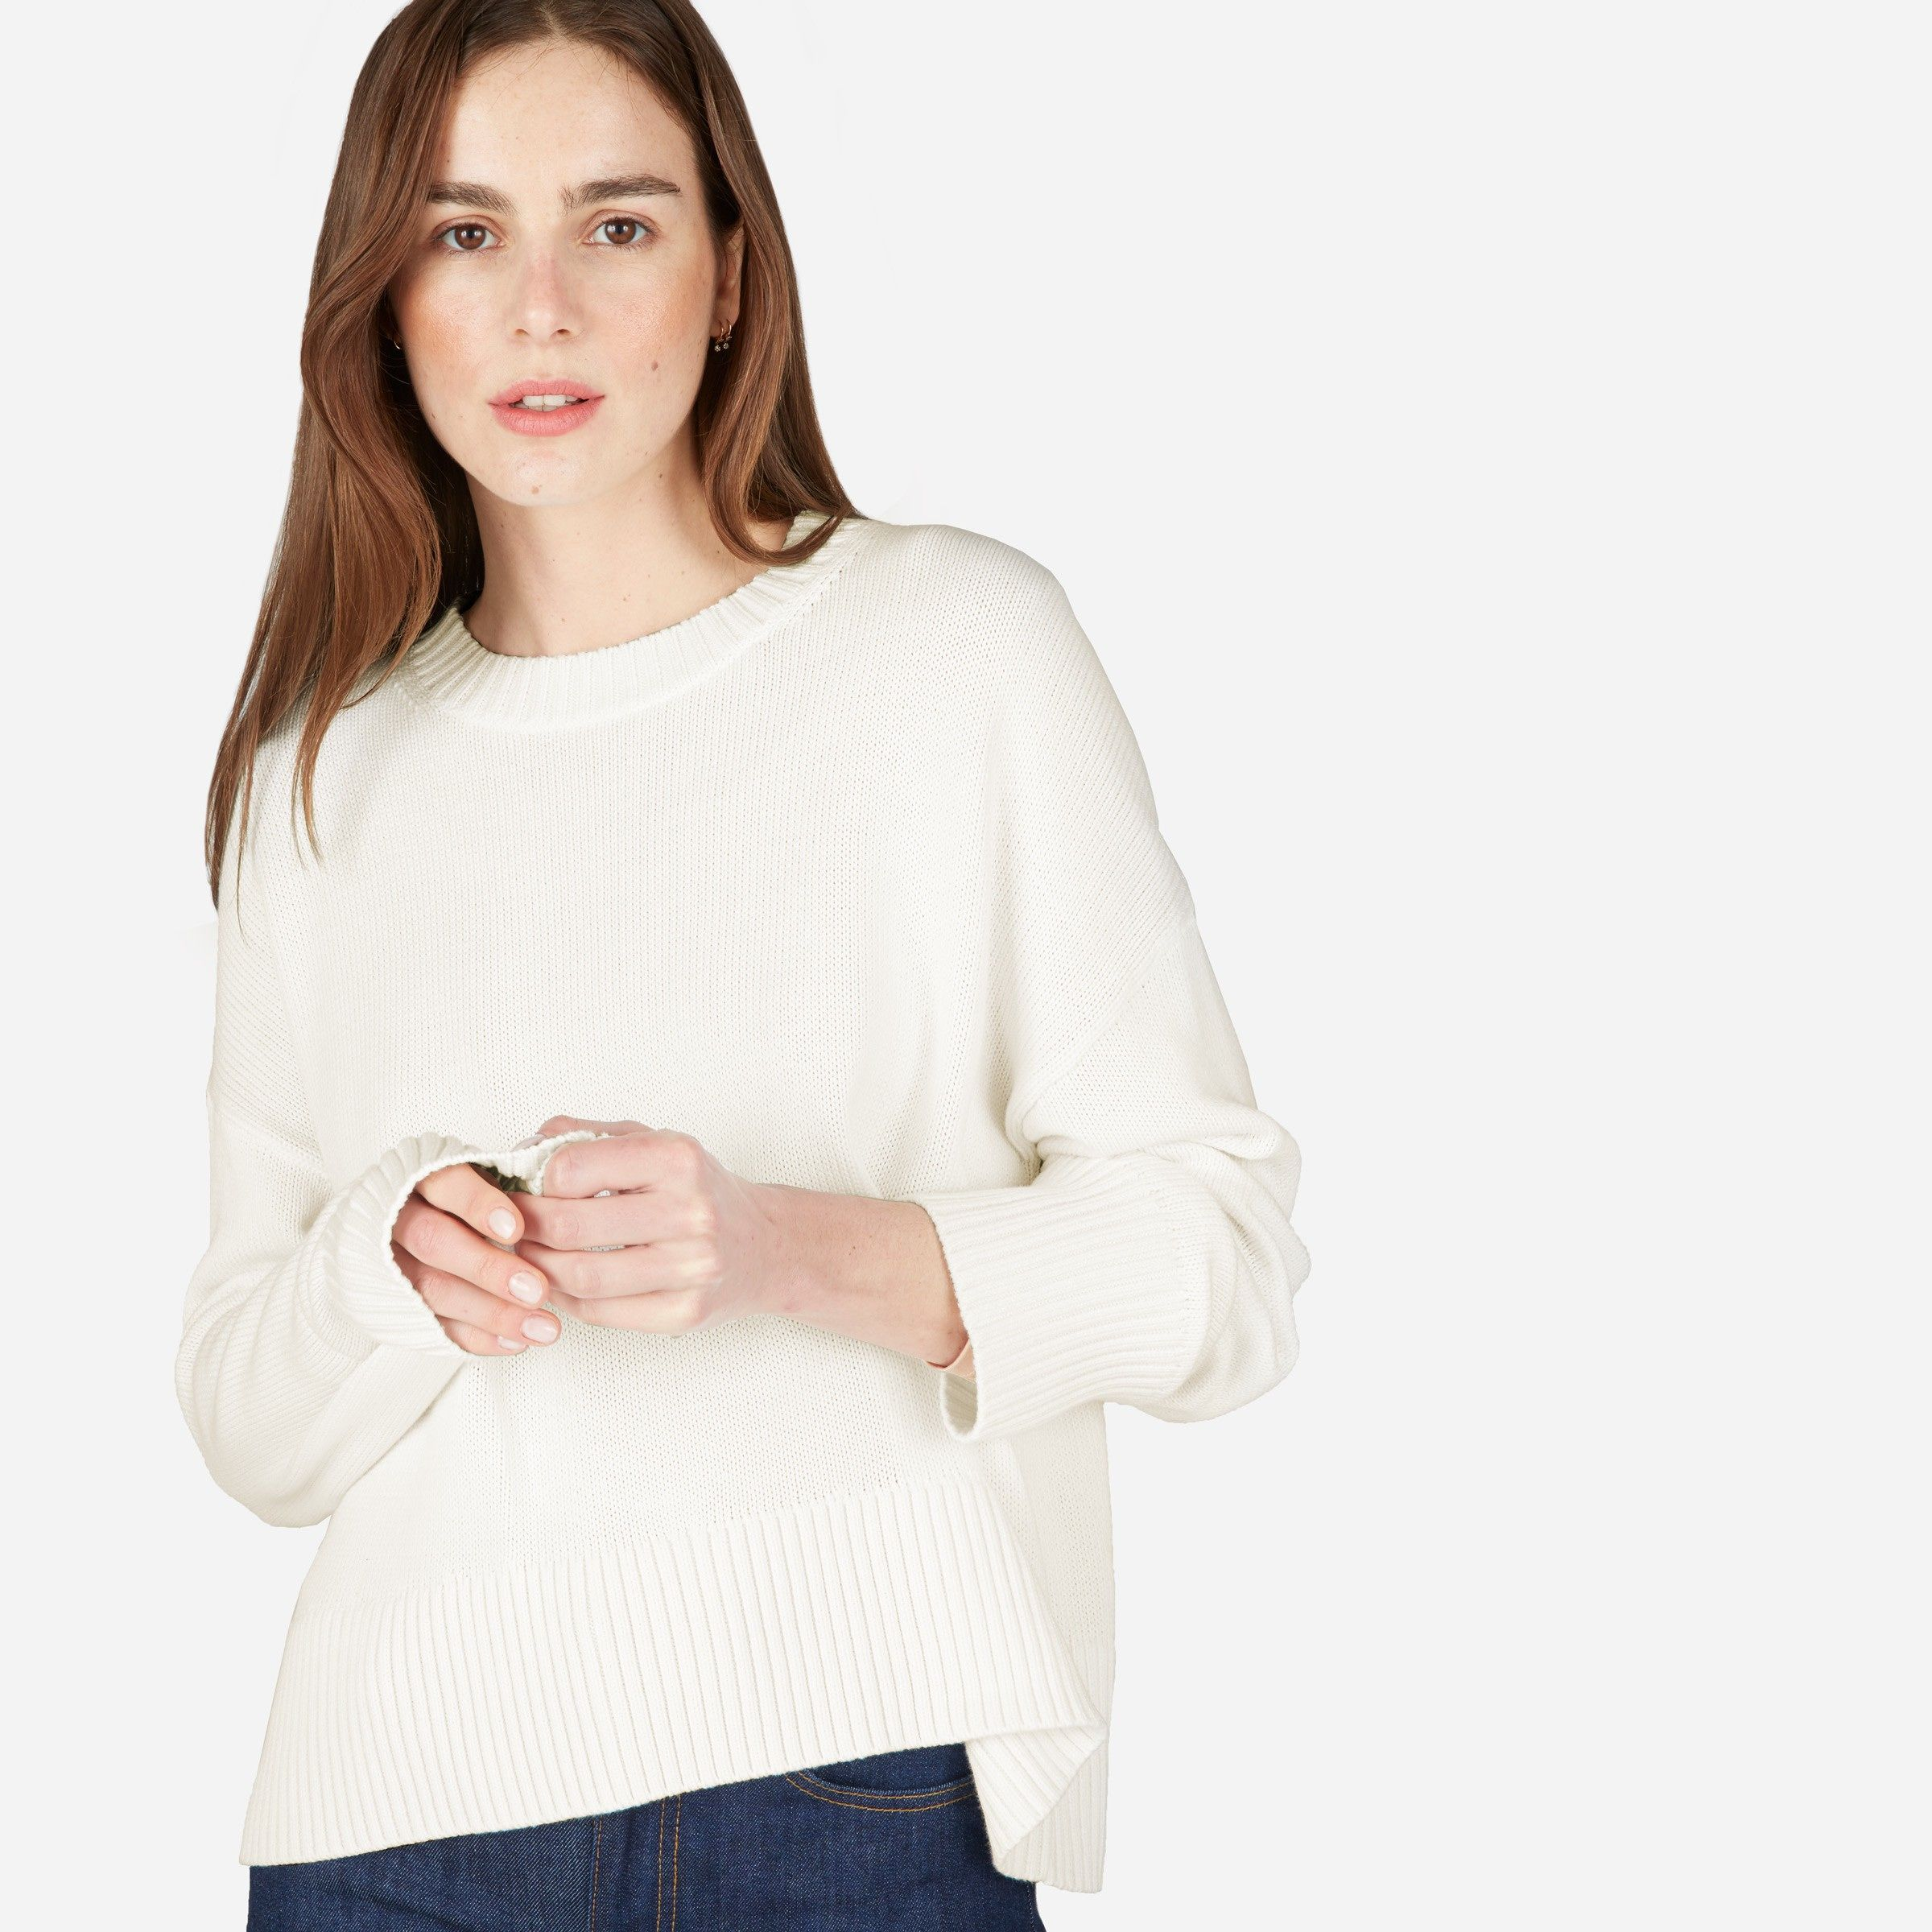 The Soft Cotton Square Crew | Cotton sweater, Cotton and Layering